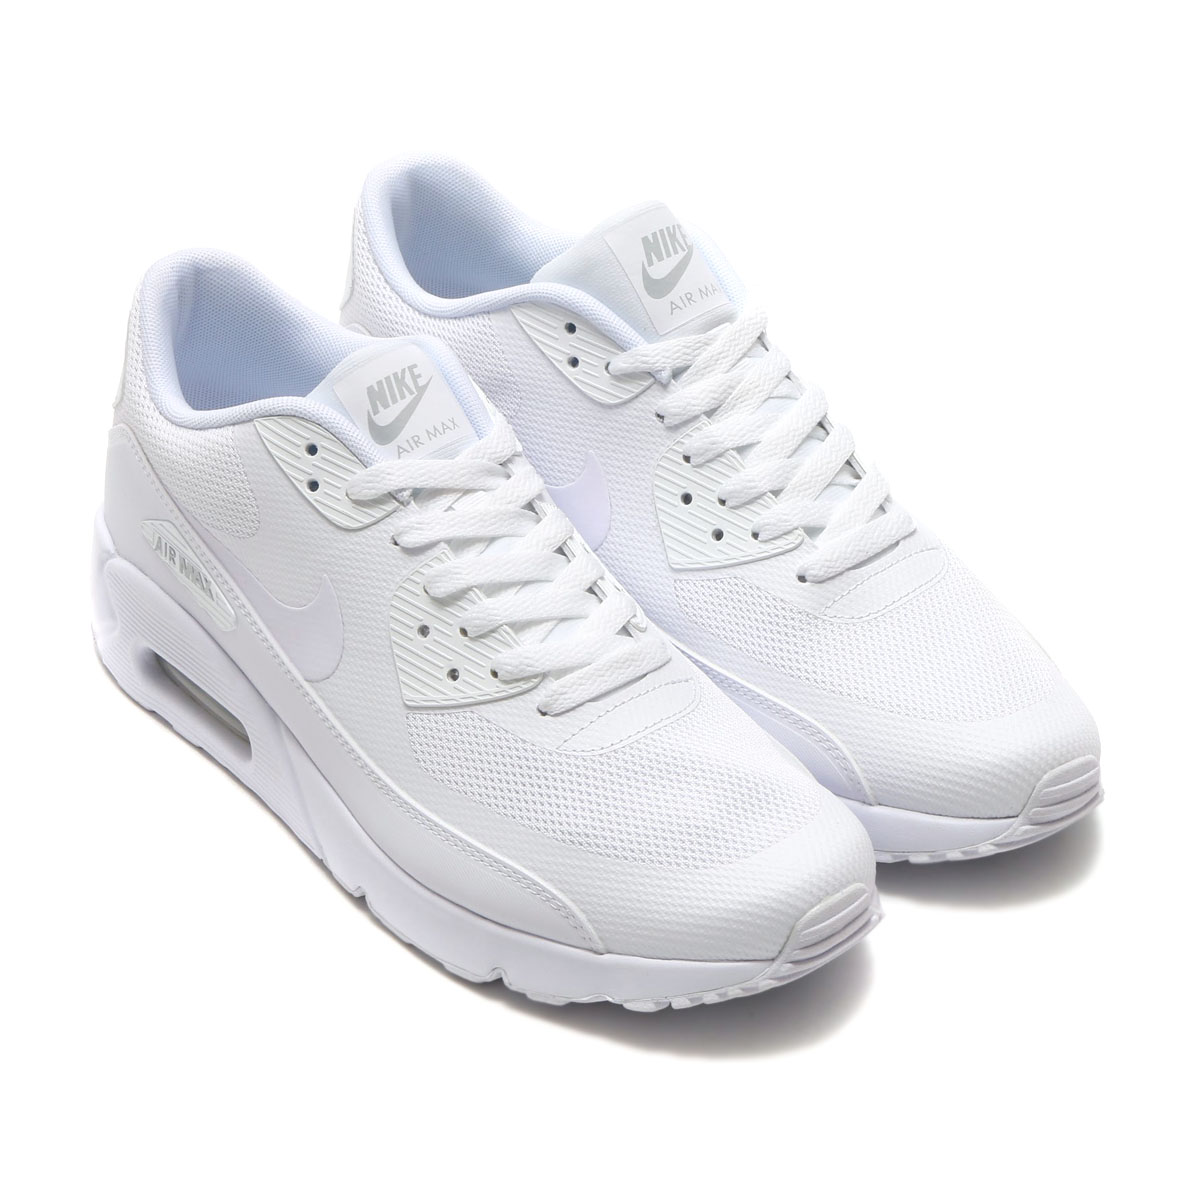 8c2db0a6d0f03 NIKE AIR MAX 90 ULTRA 2.0 ESSENTIAL (Nike Air Max 90 Ultra 2.0 essential)  WHITE WHITE-WHITE-PURE PLATINUM 17SP-I